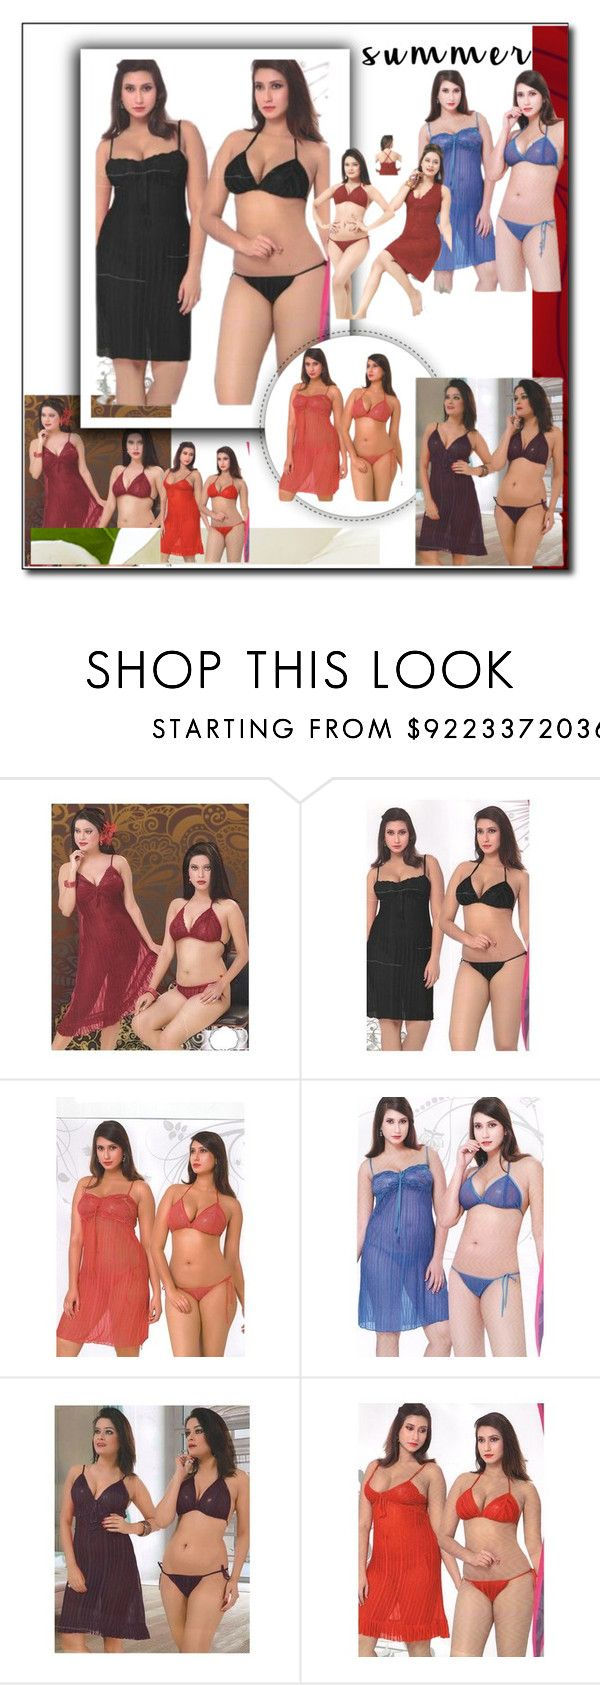 Sexy Nightwear for Ladies & Hot Night Dresses for women by lavanyas-trendzs on Polyvore featuring bedroom  http://www.polyvore.com/sexy_nightwear_for_ladies_hot/set?id=205150086  #sexynighty  #sleepwear #bedroomnighty #honeymoonighty #nightwear  #indiatrendzs